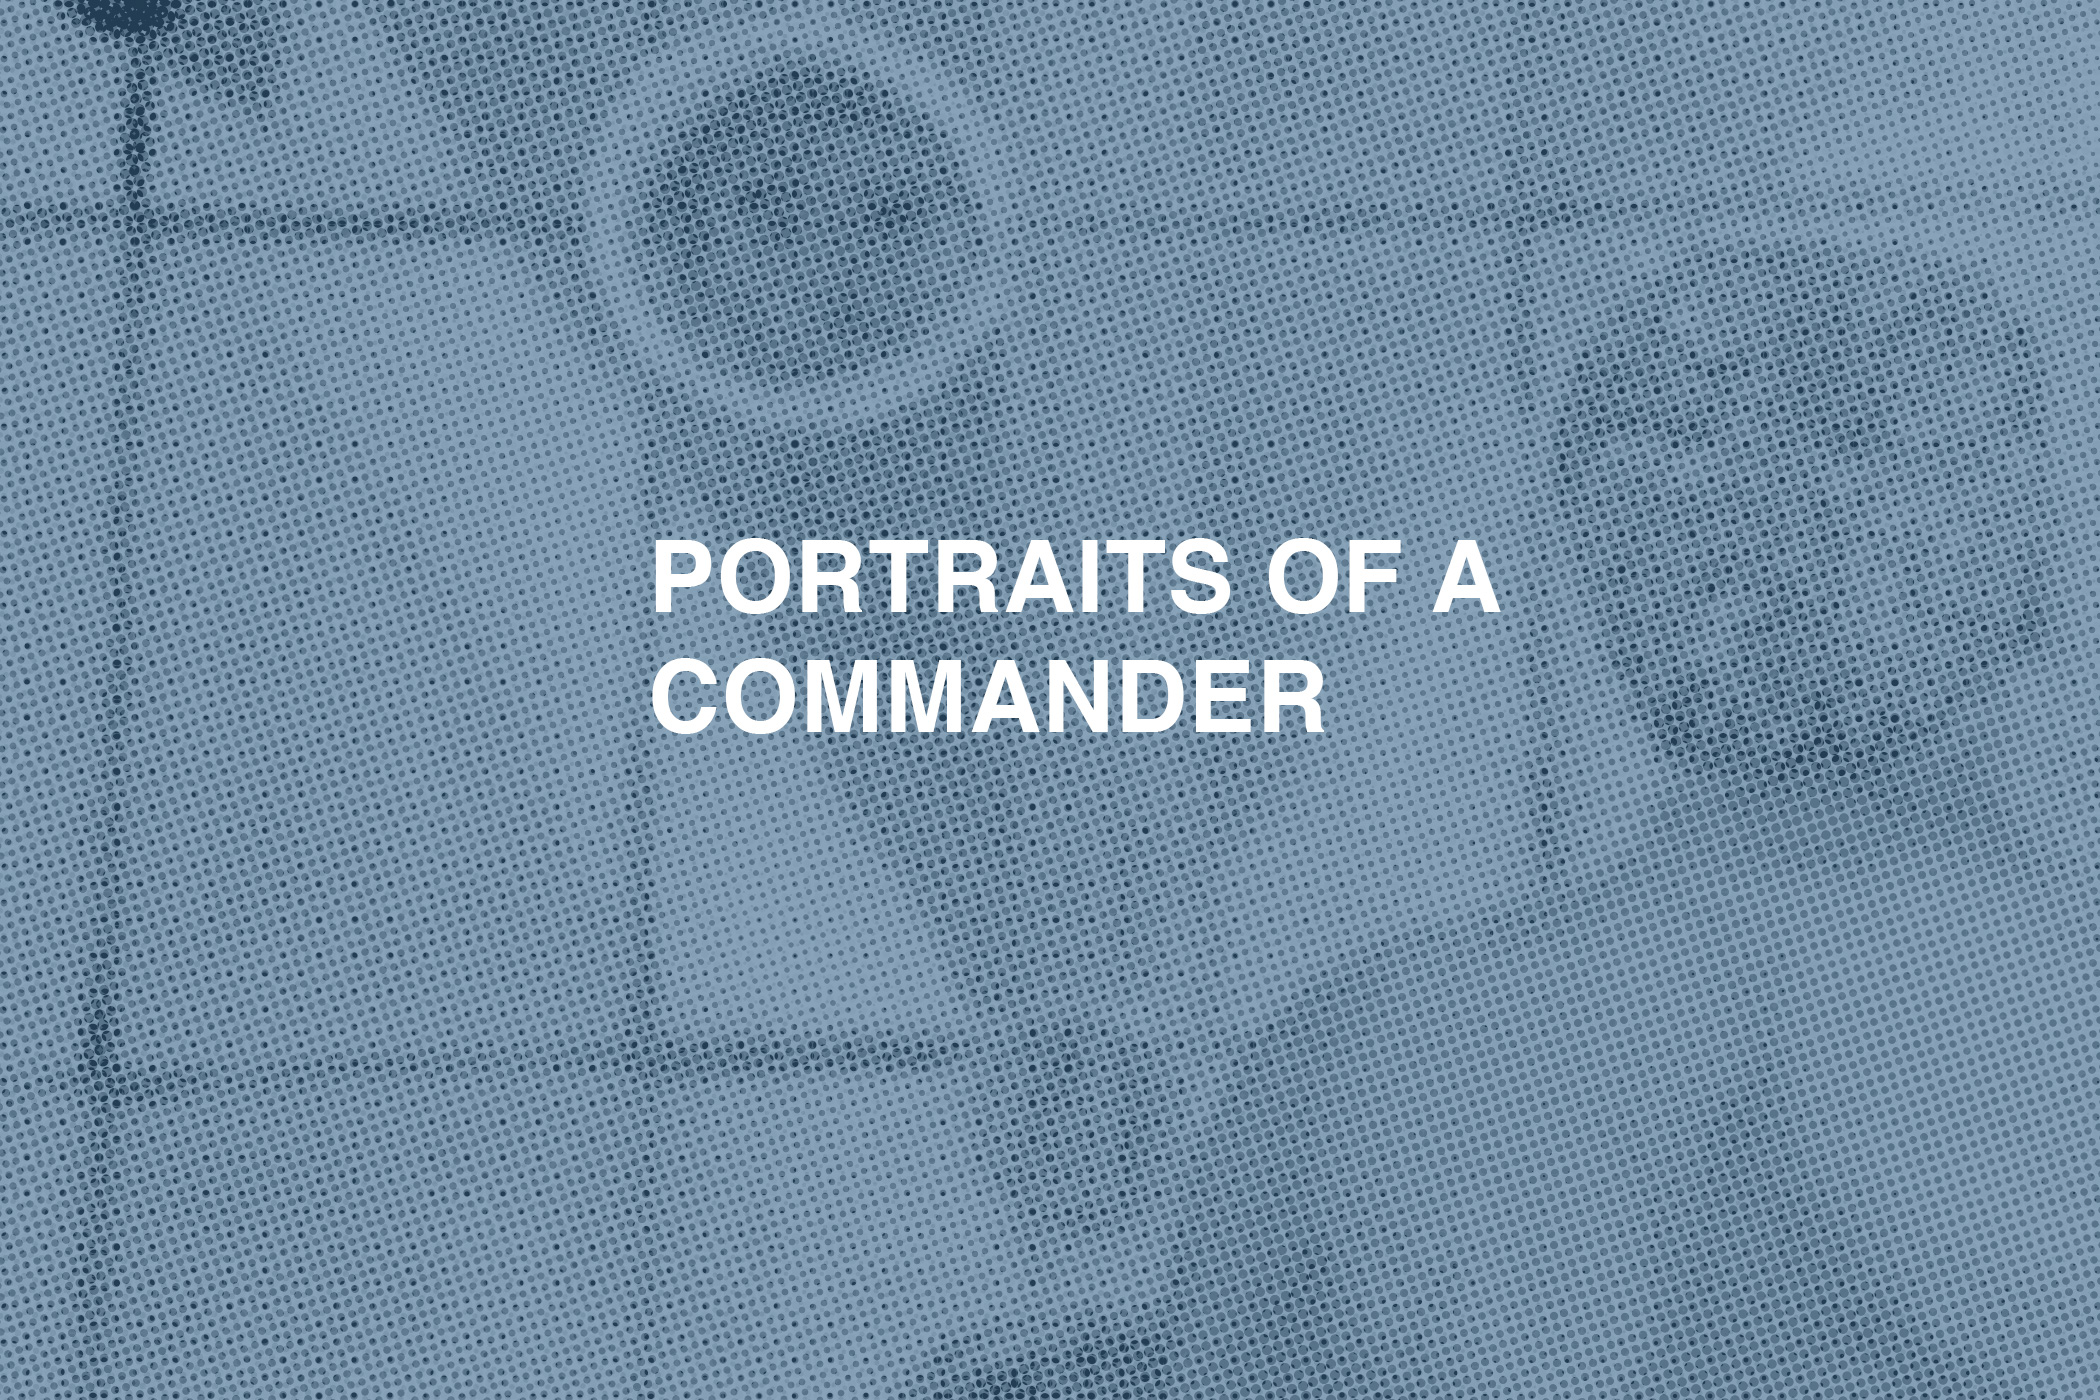 Portraits of a Commander